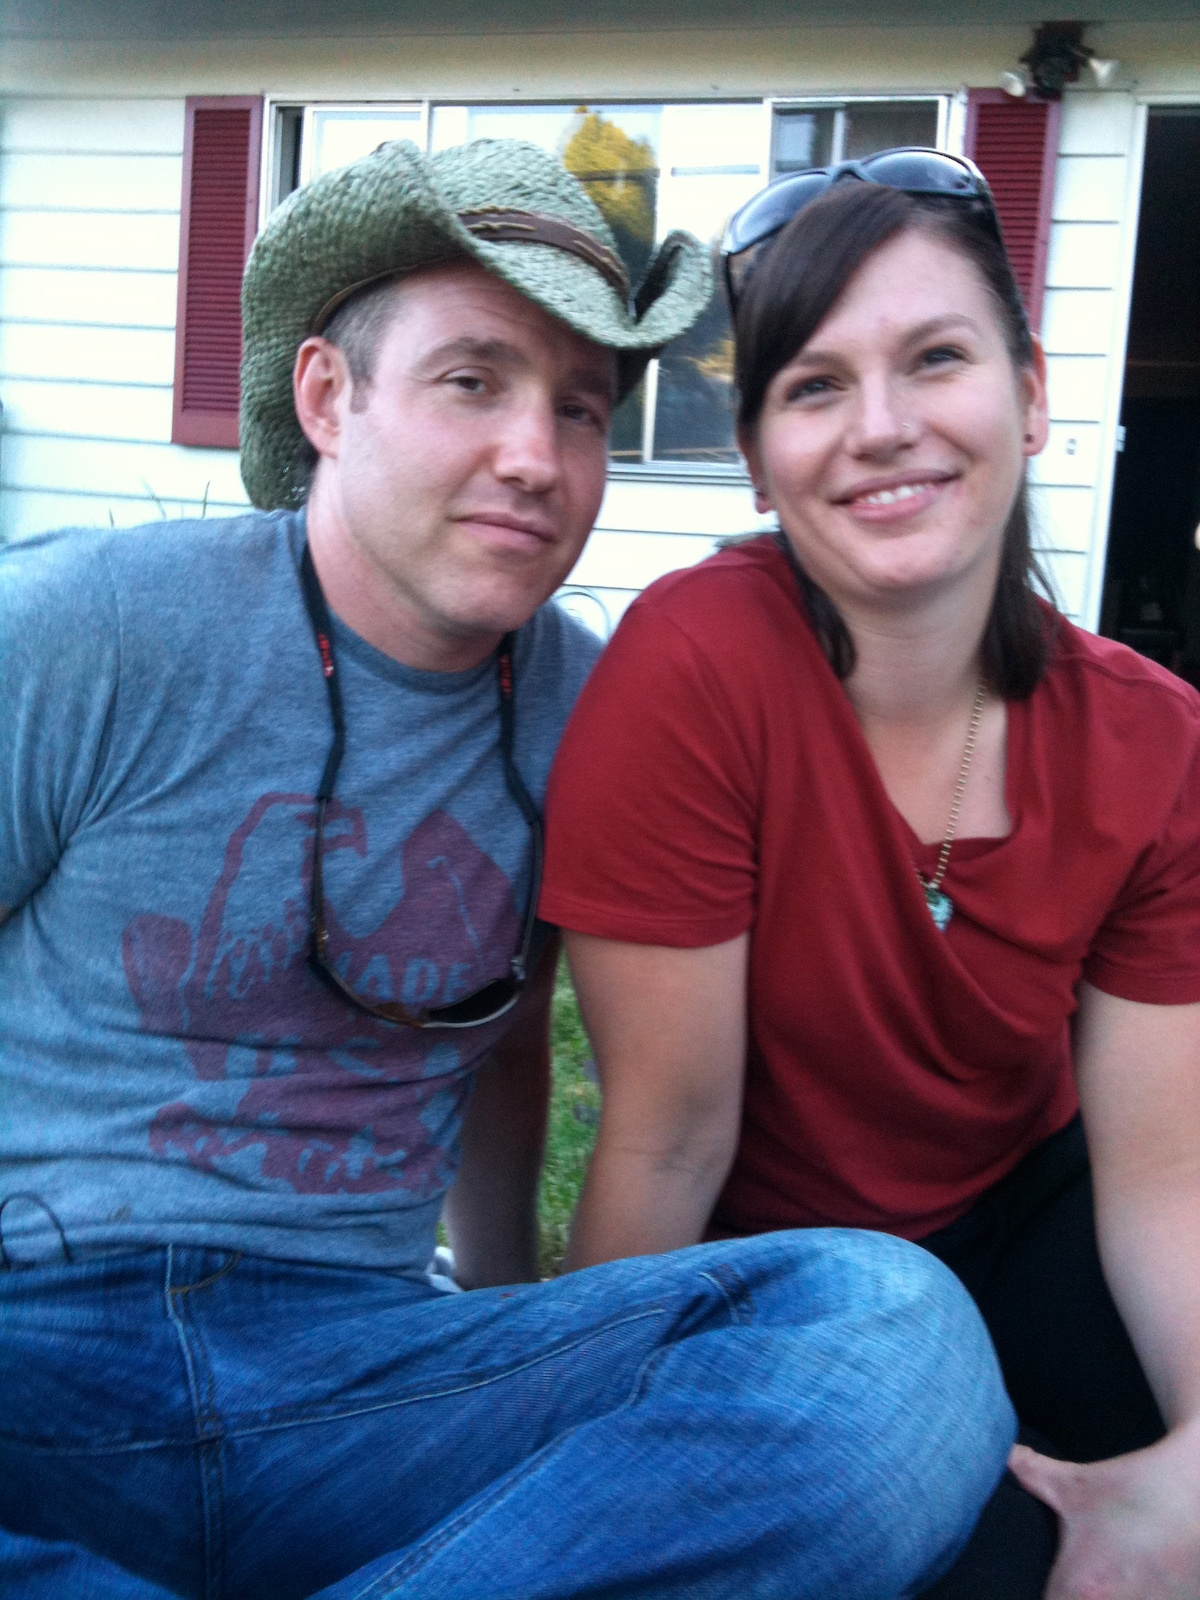 We are a young Seattle couple who have been rentin